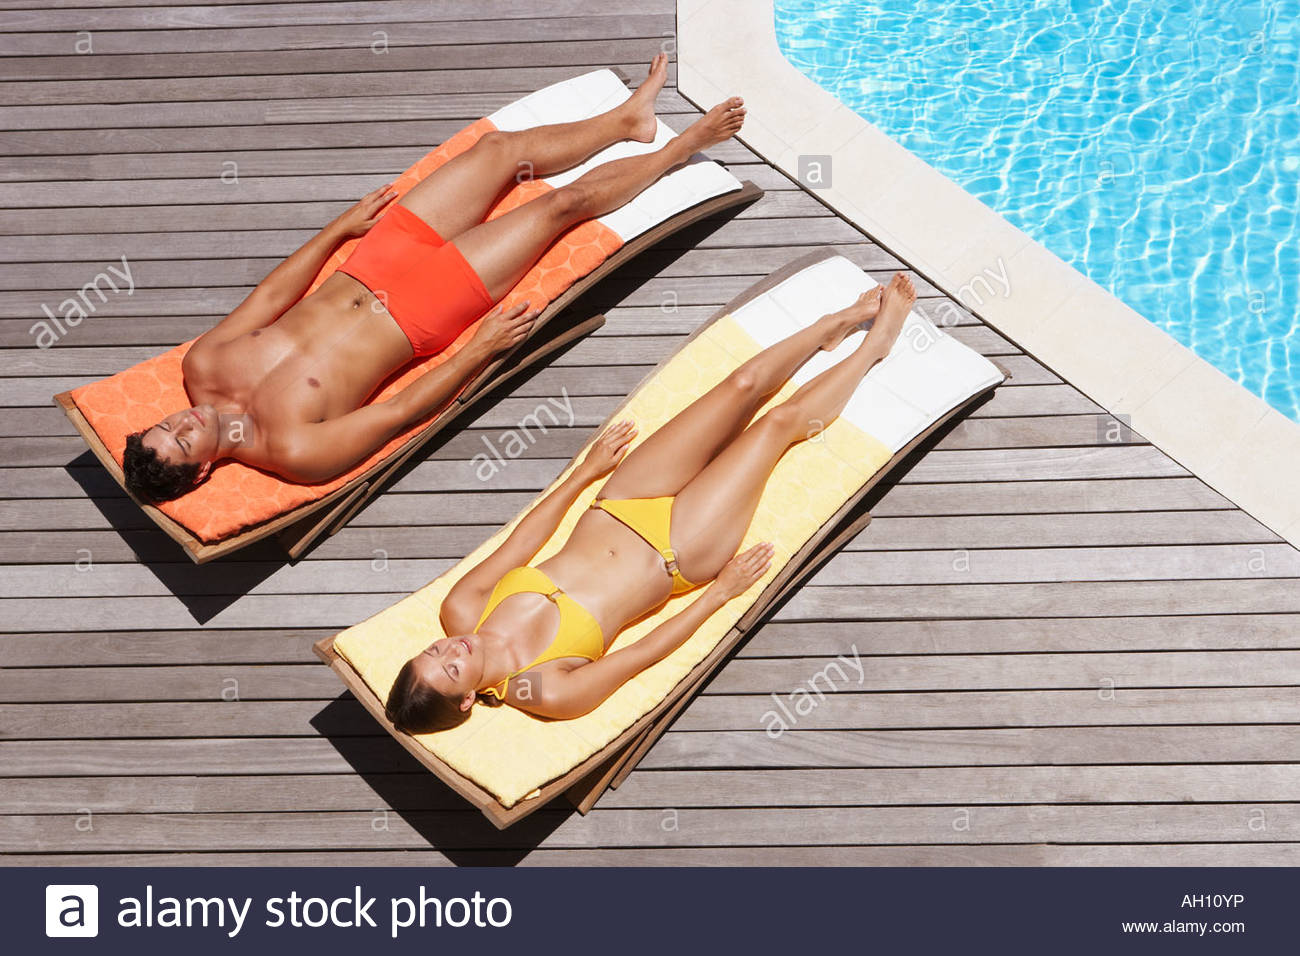 Man and woman sunbathing on pool deck - Stock Image